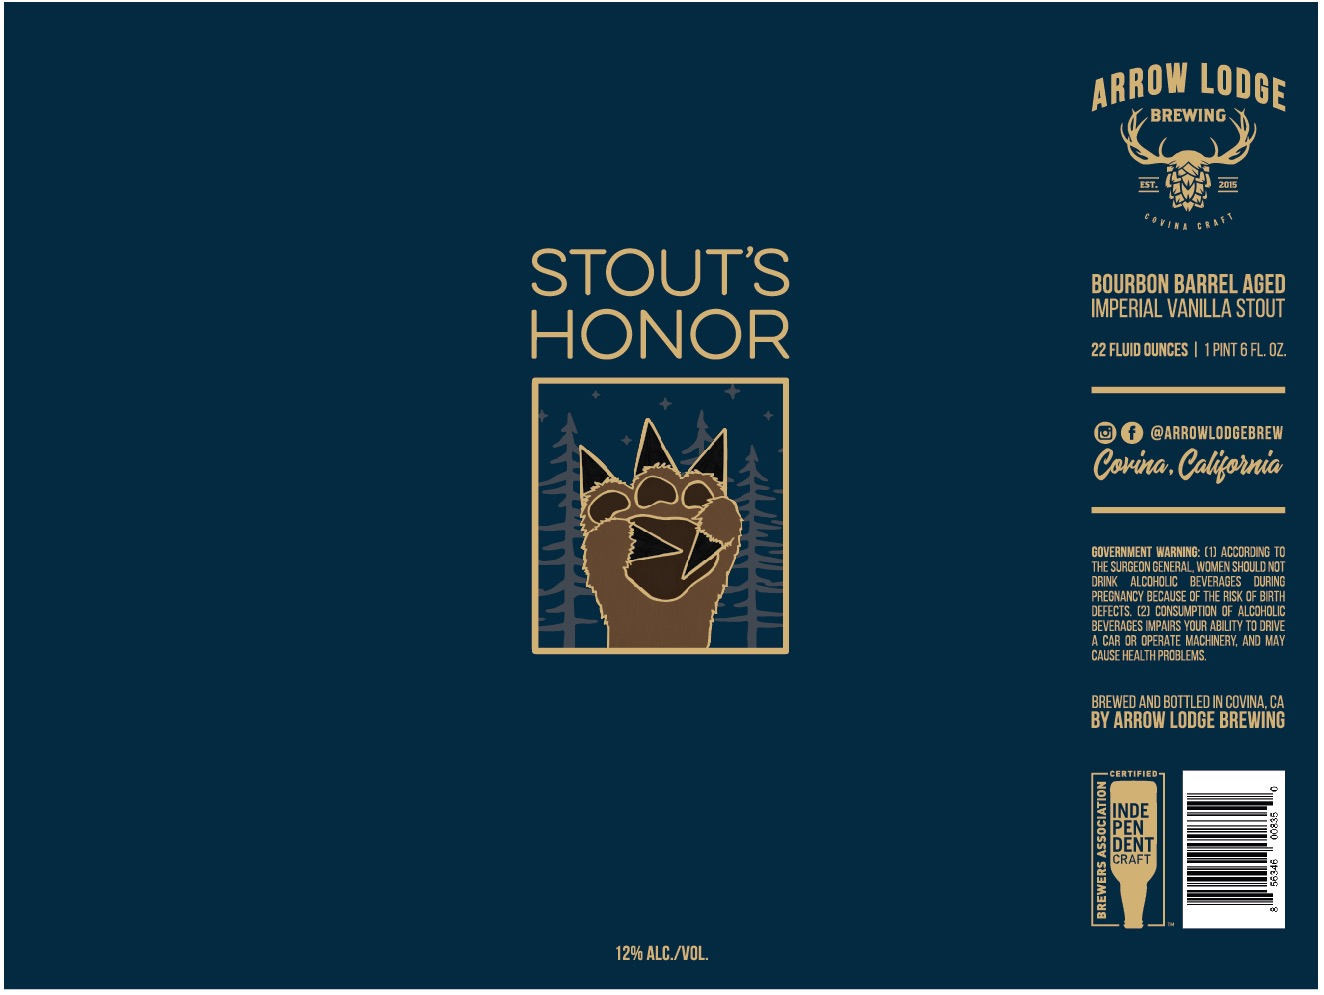 STOUT'S HONOR - BOURBON BARREL AGED IMPERIAL VANILLA STOUT12% ABV